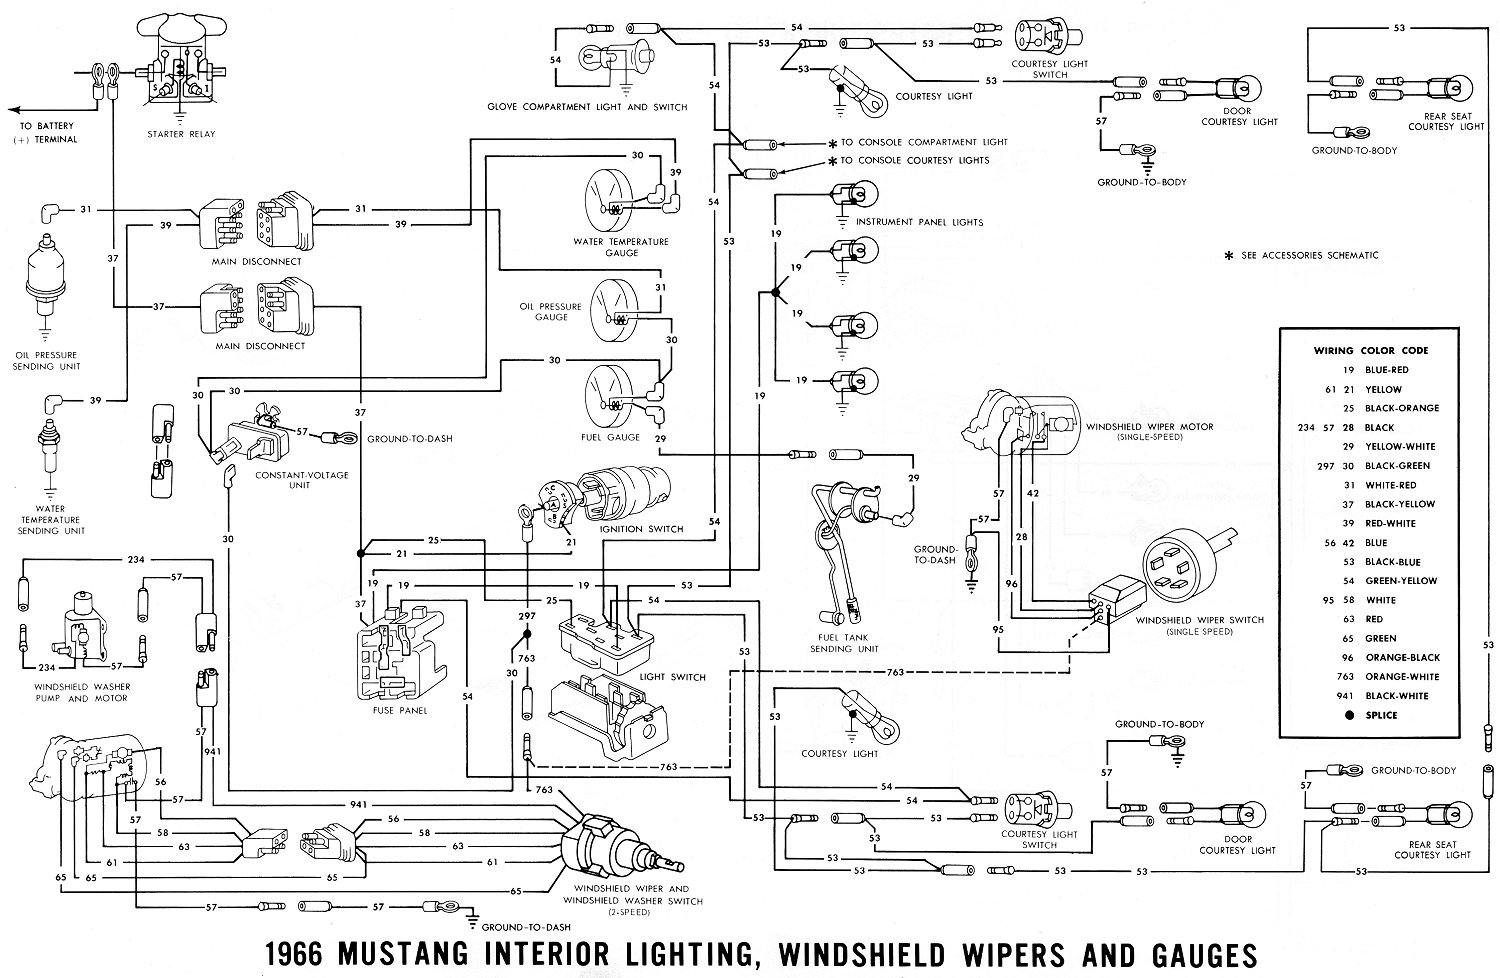 1966 mustang wiring diagrams average joe restoration rh  averagejoerestoration com 1966 mustang tail light wiring diagram